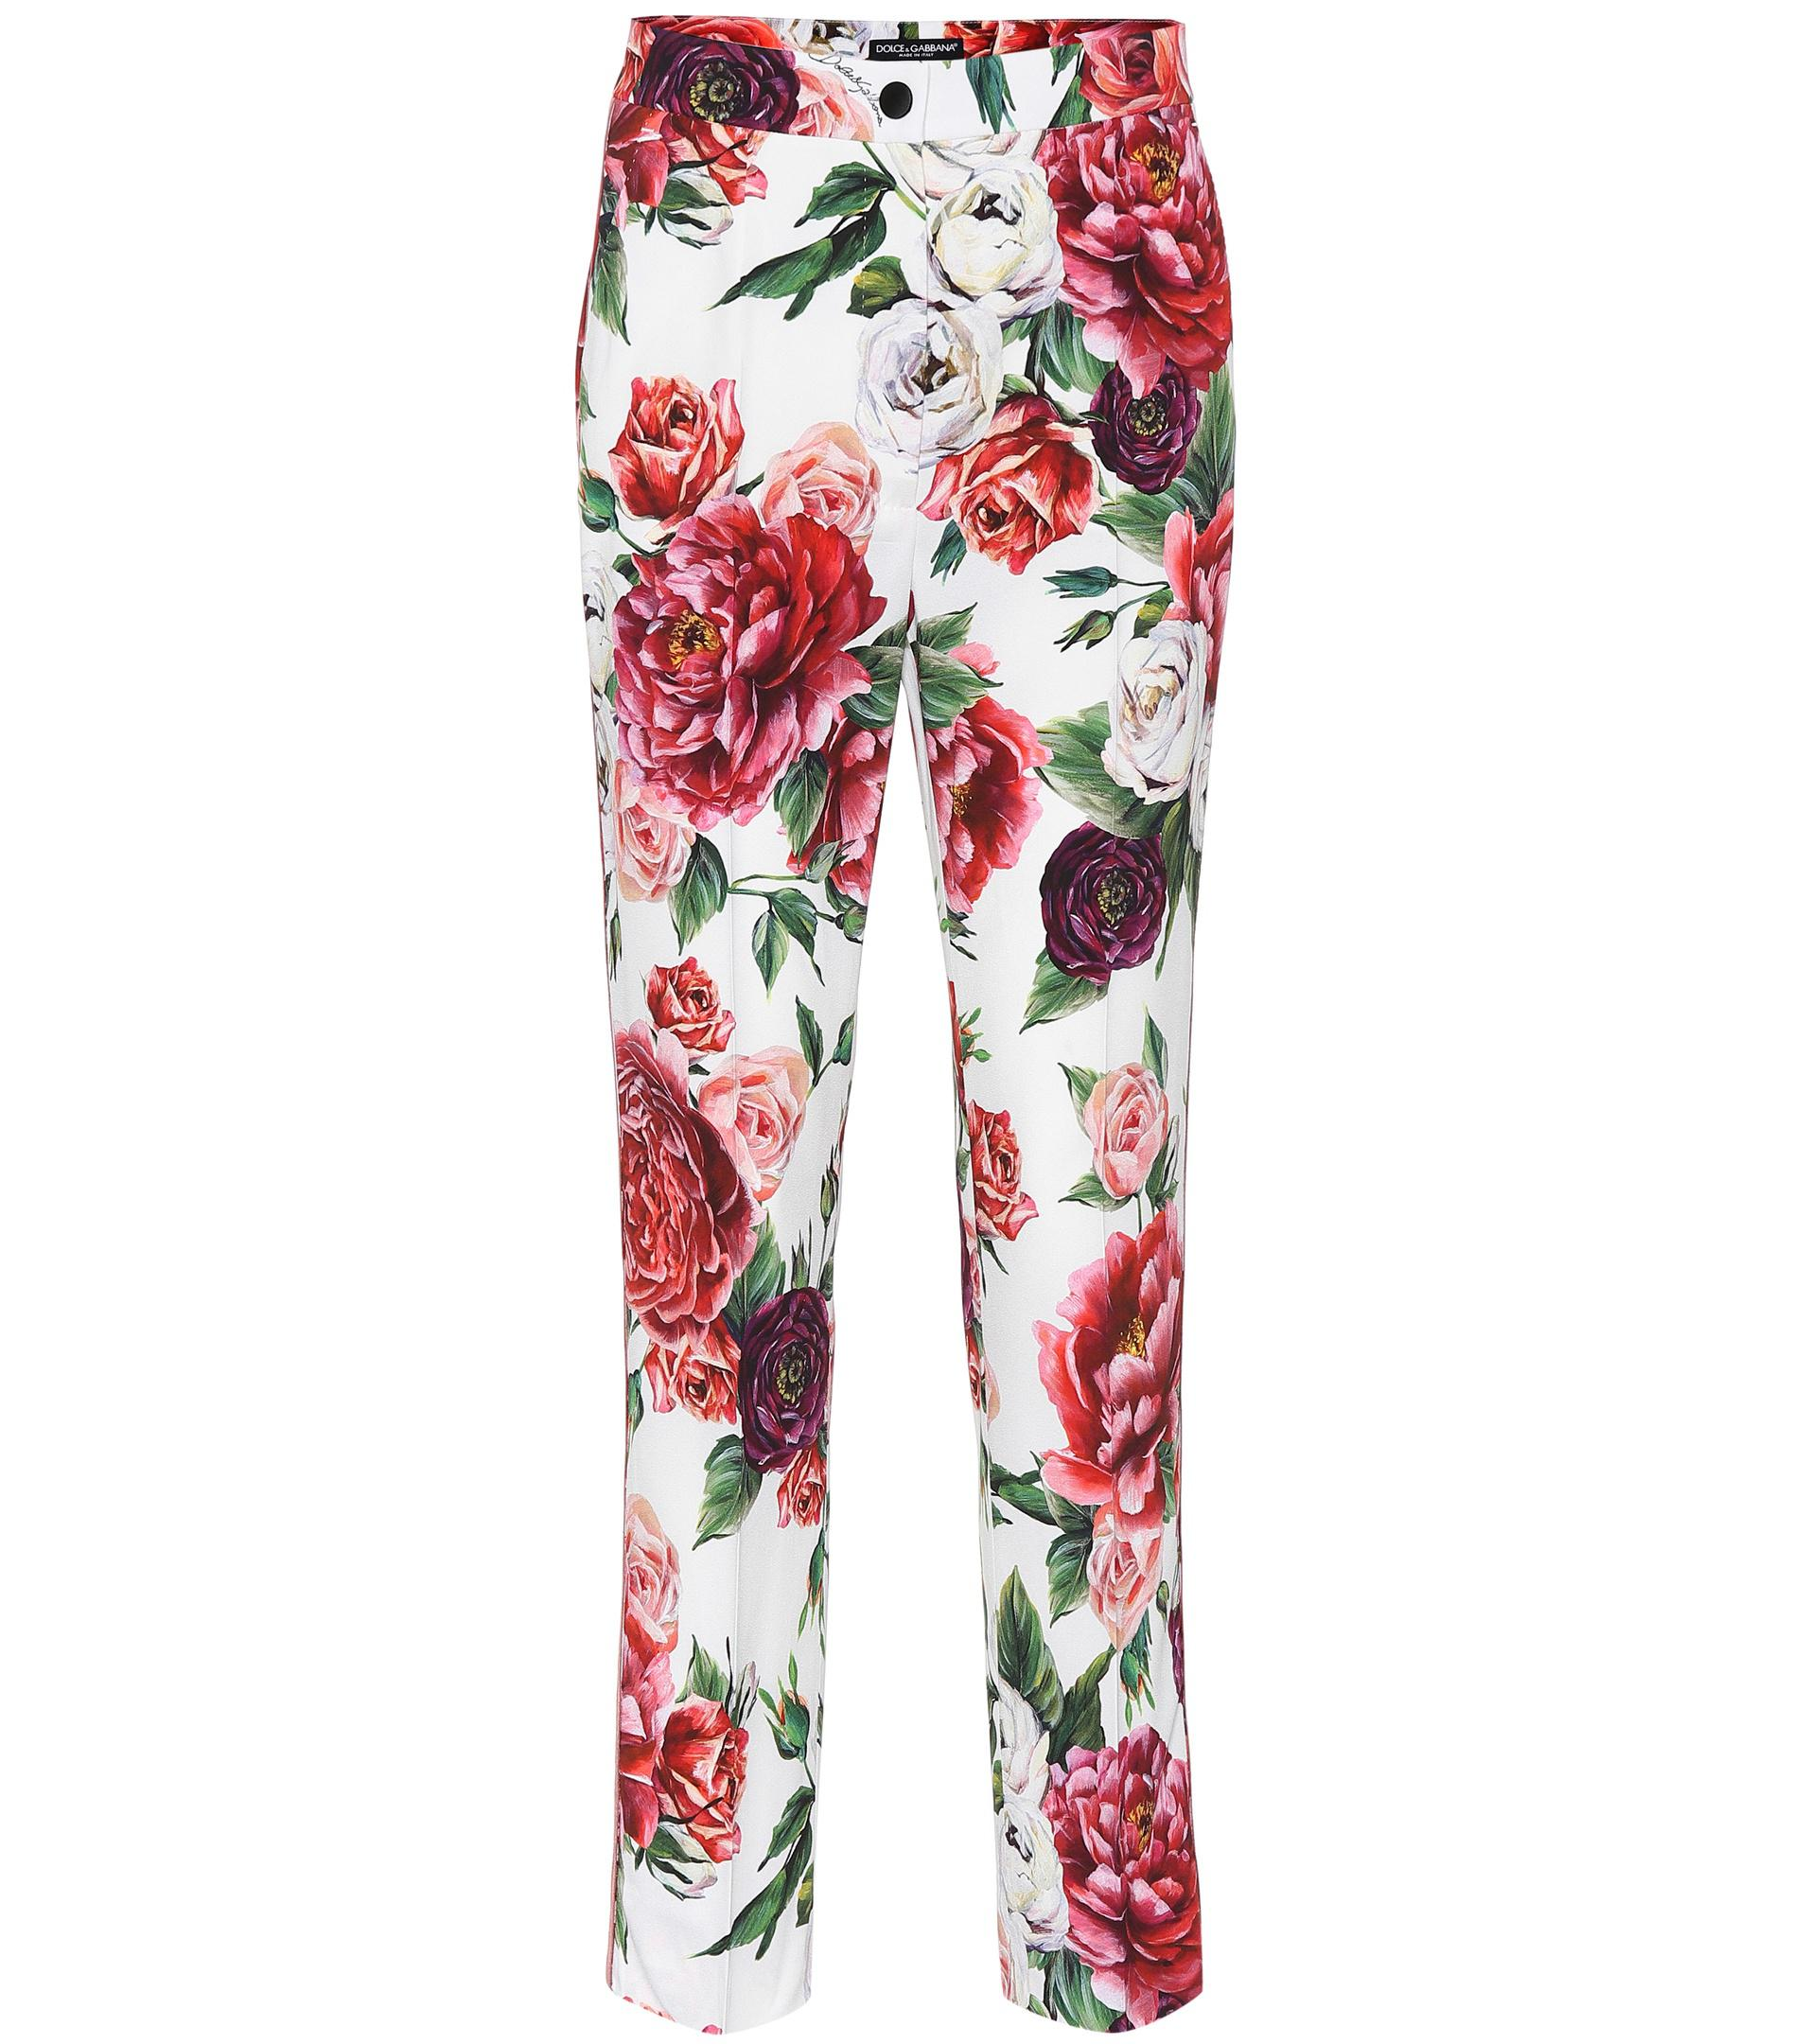 d3d1ca16e8 Dolce   Gabbana Floral-printed Silk-blend Pants in Red - Lyst